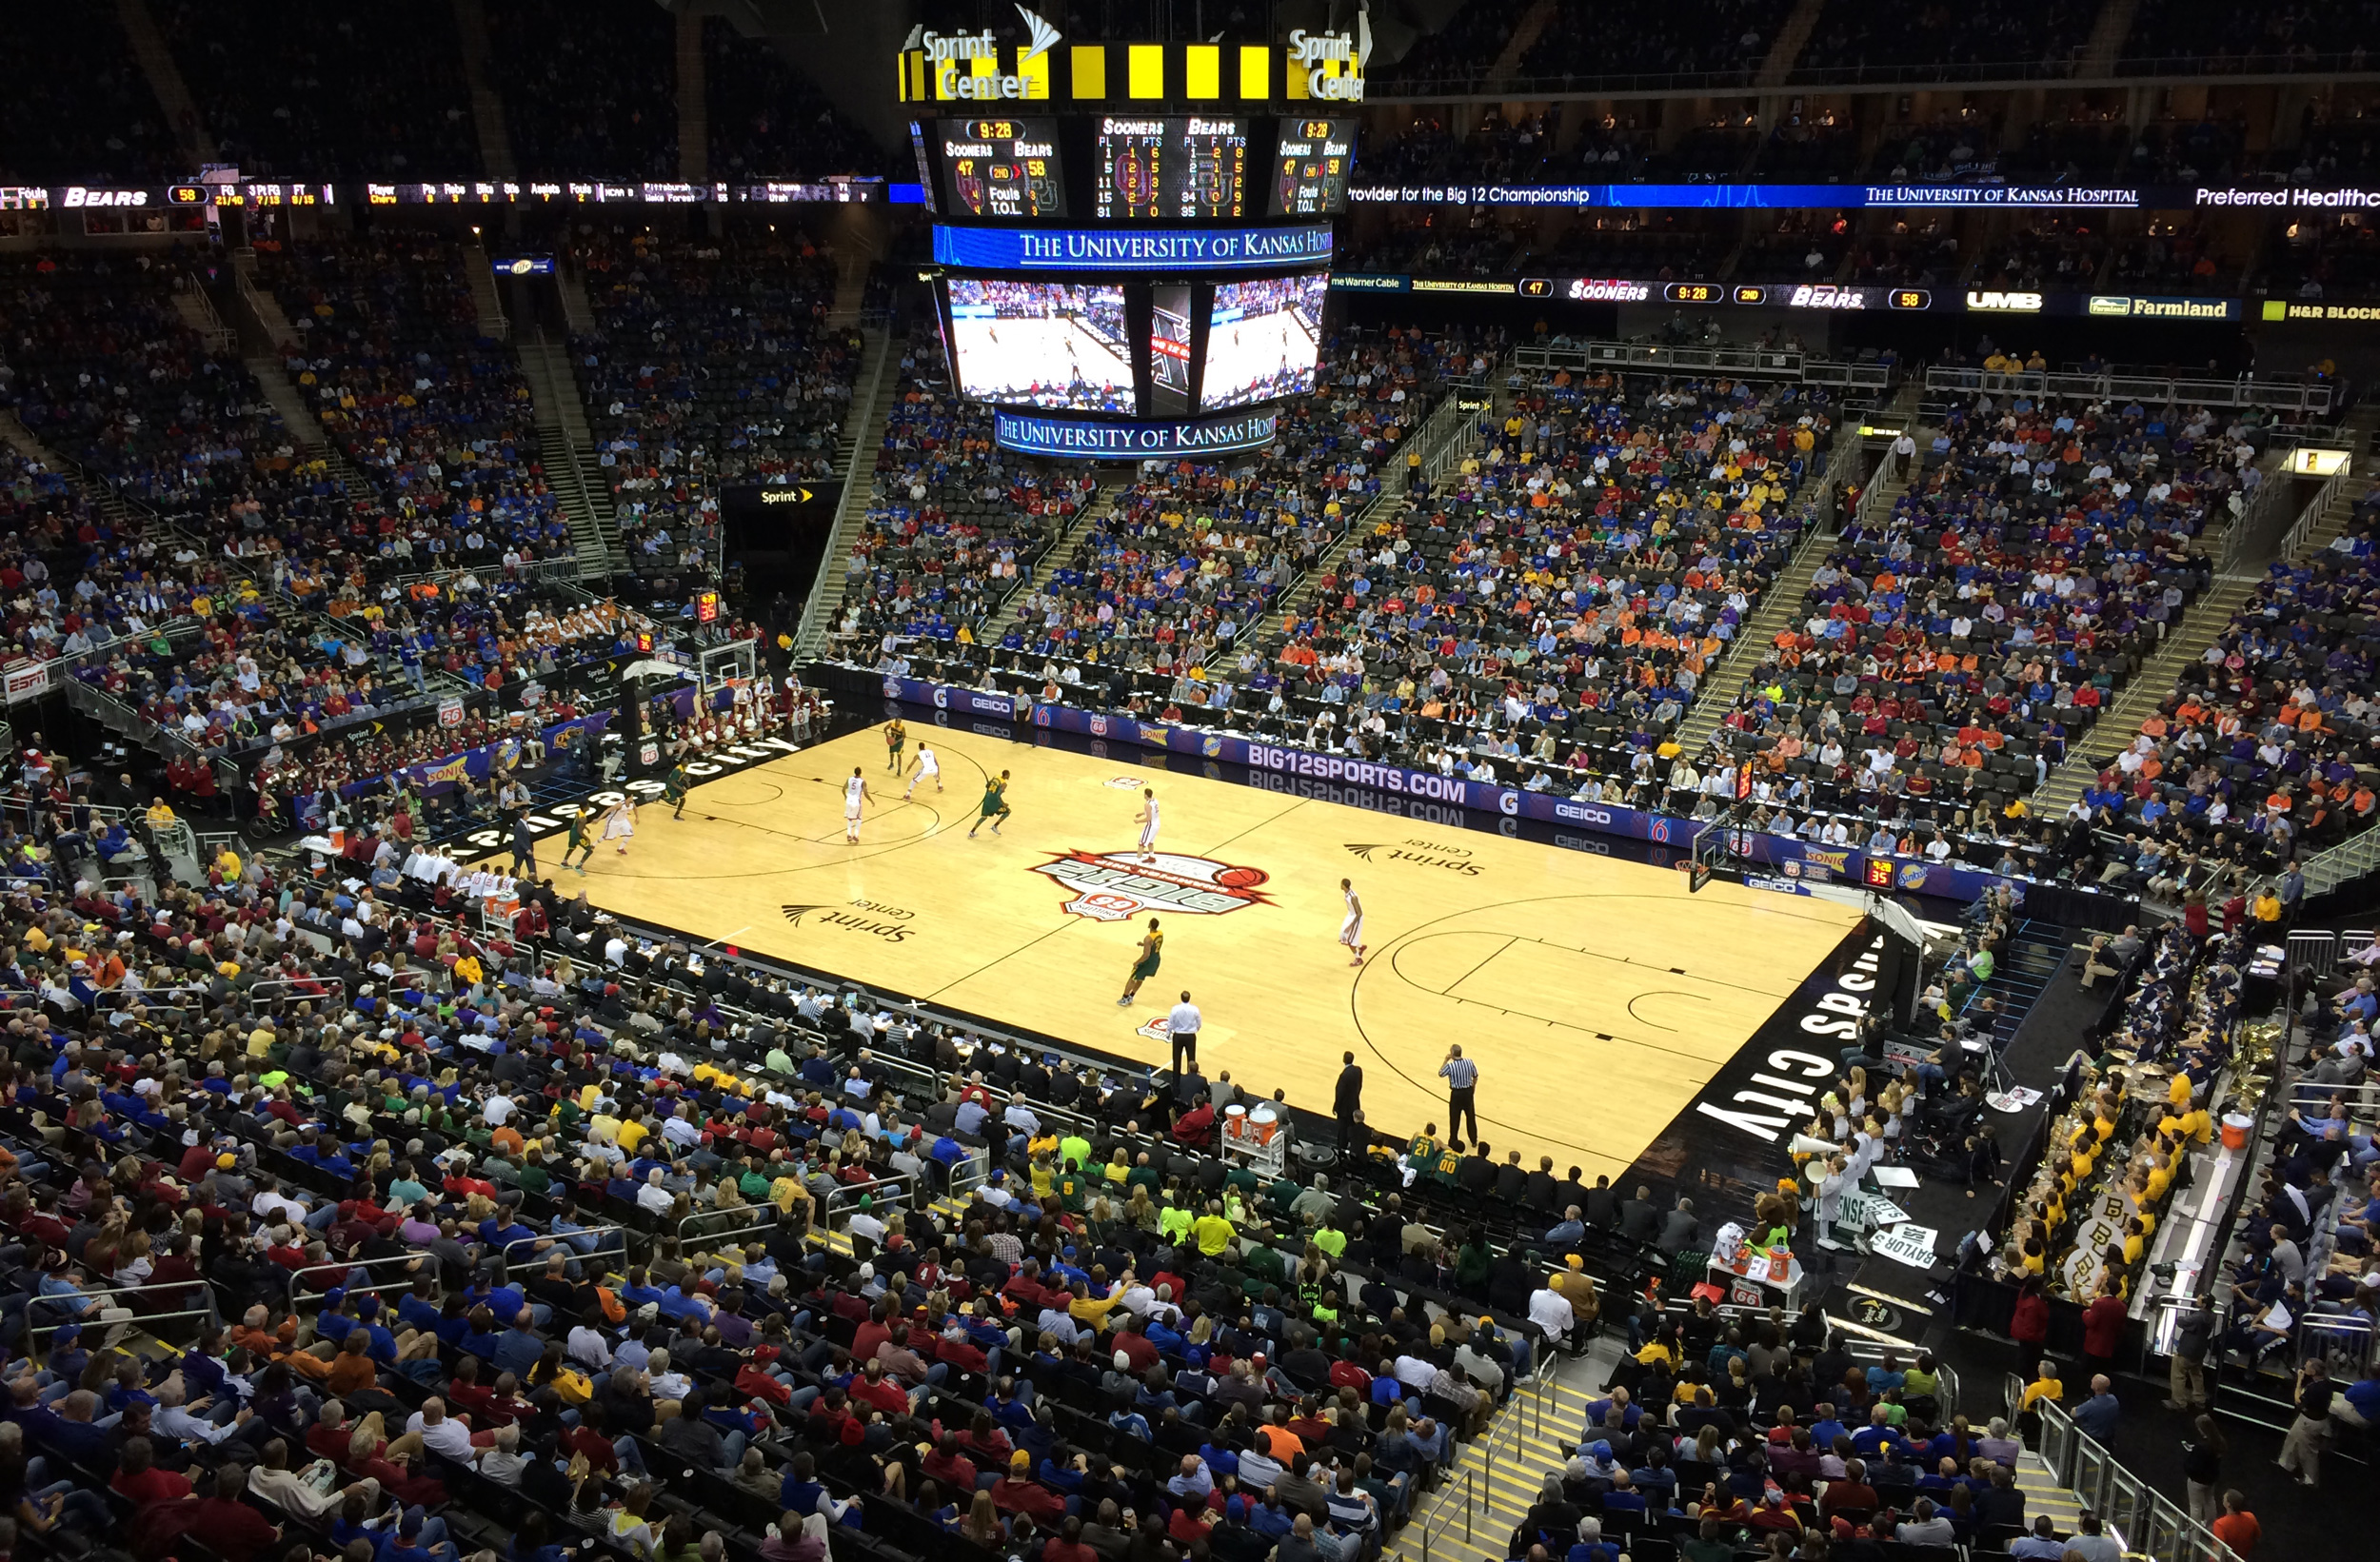 Big 12 Championship Sprint Center